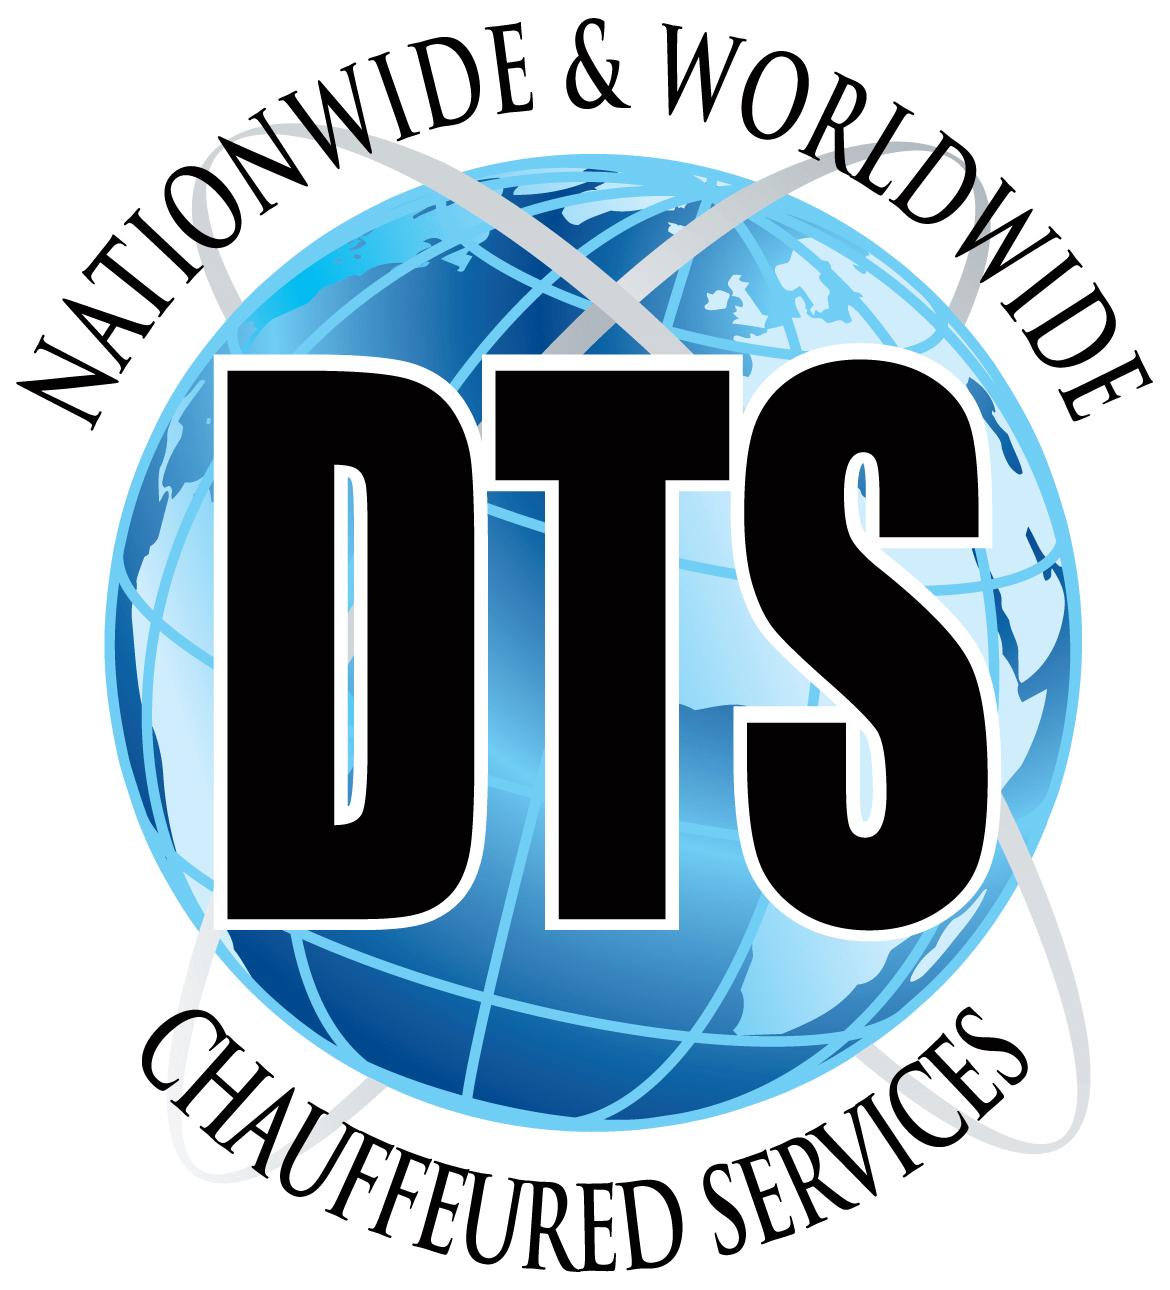 DTS Nationwide & Worldwide Chauffeured Services